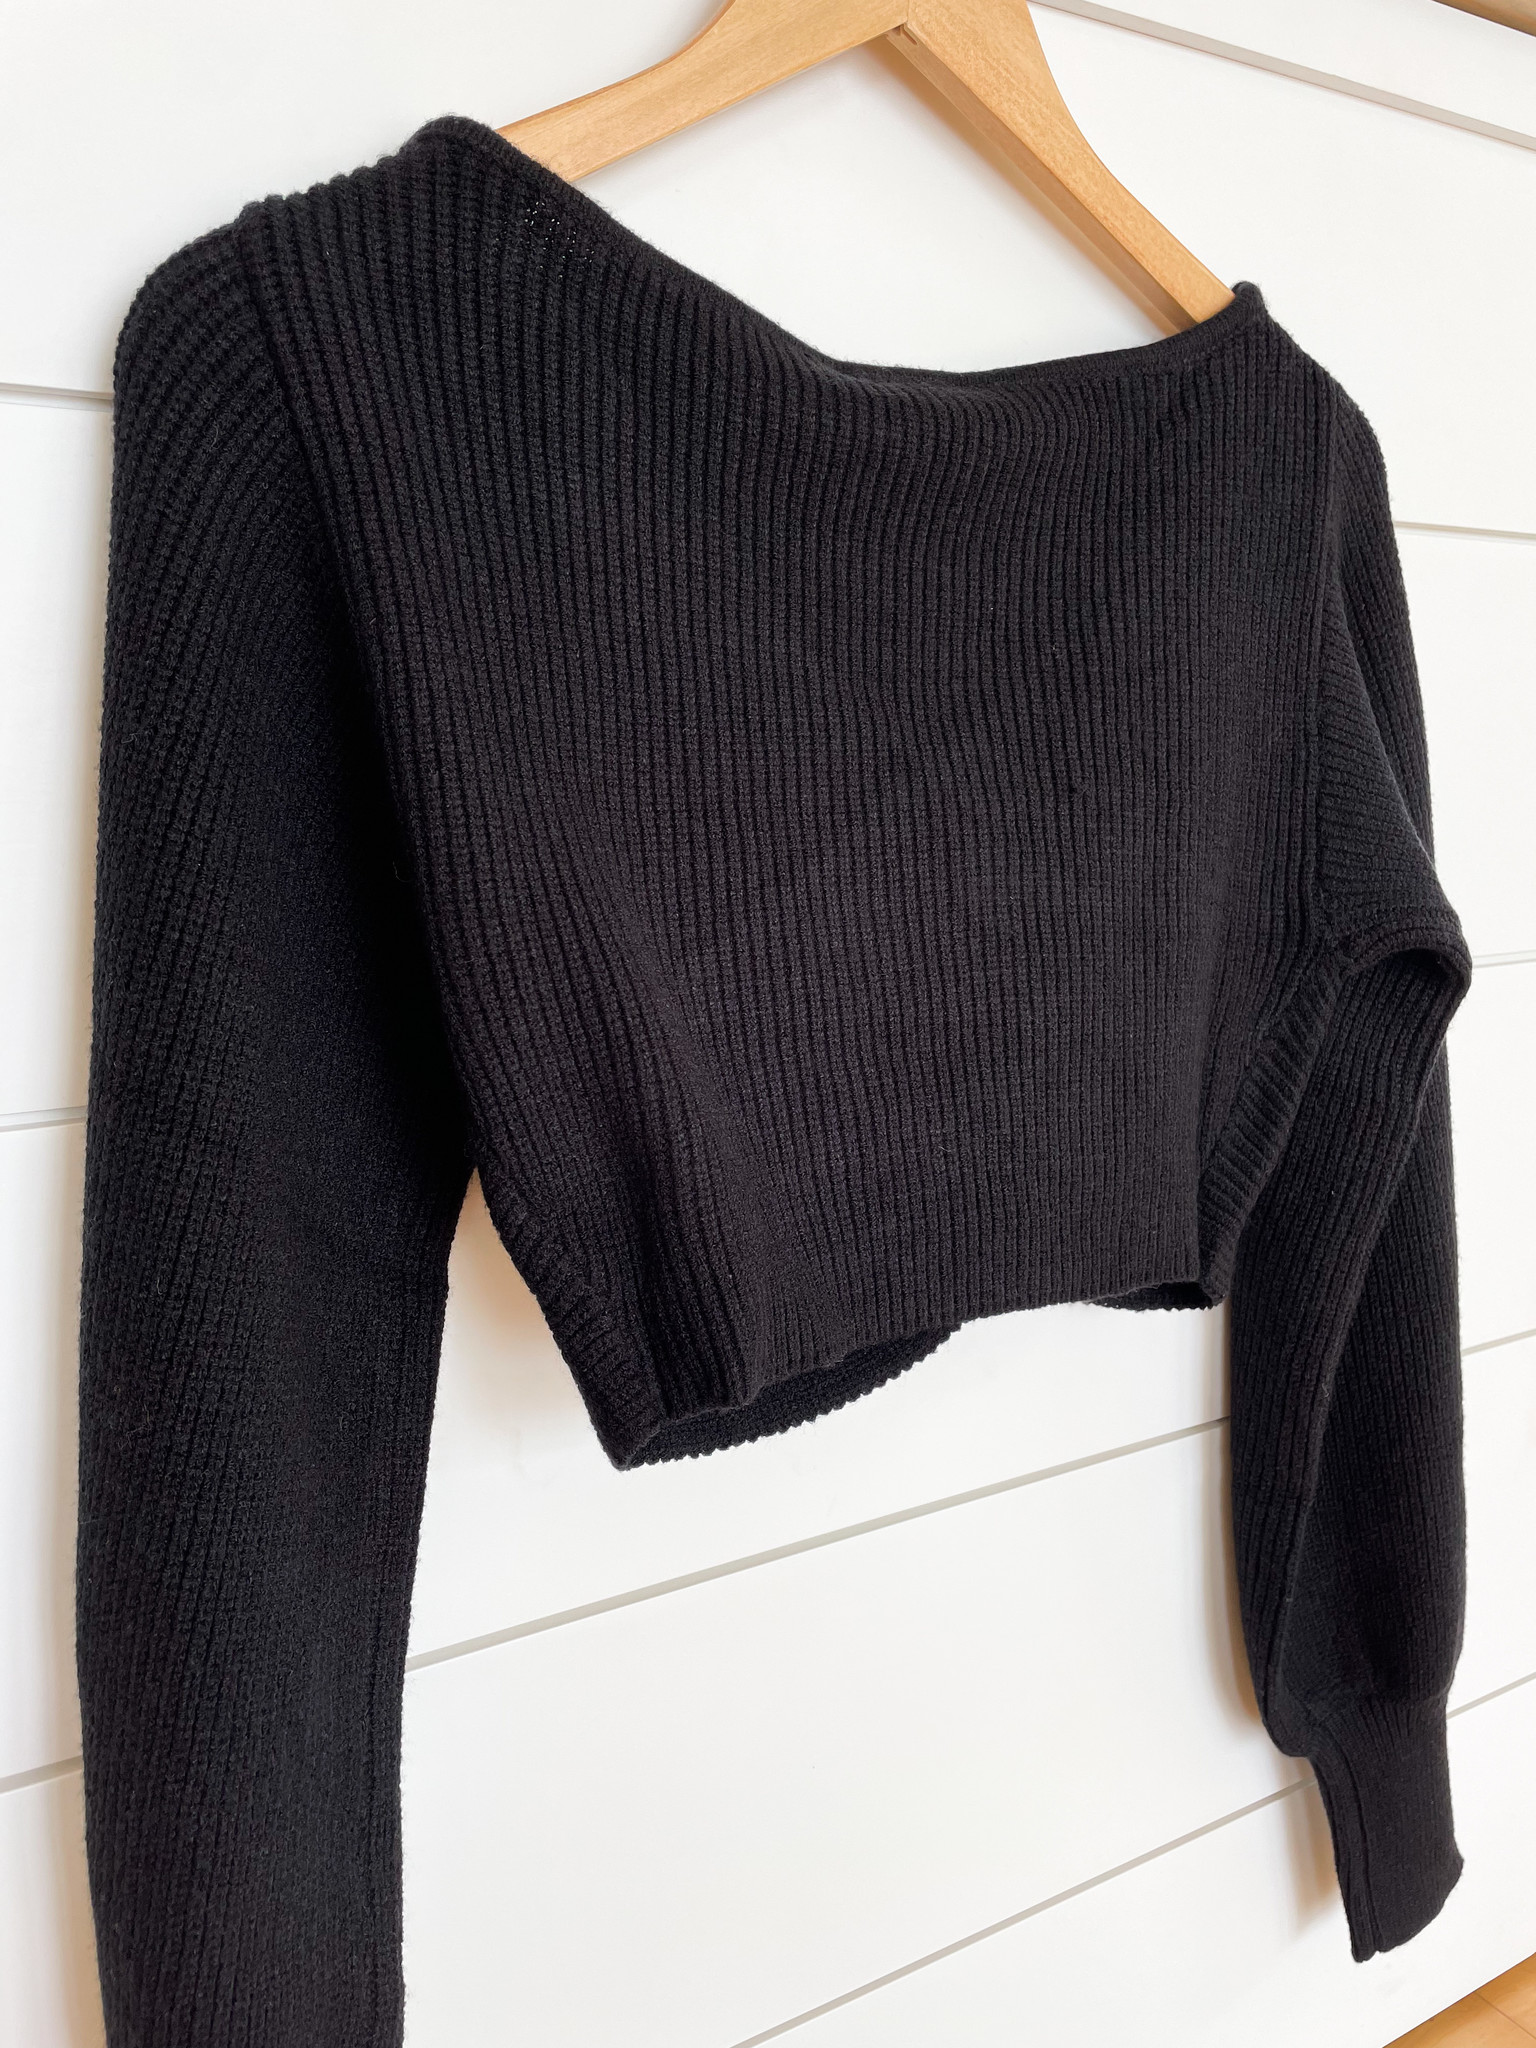 Black Twisted Knit Sweater Crop Top